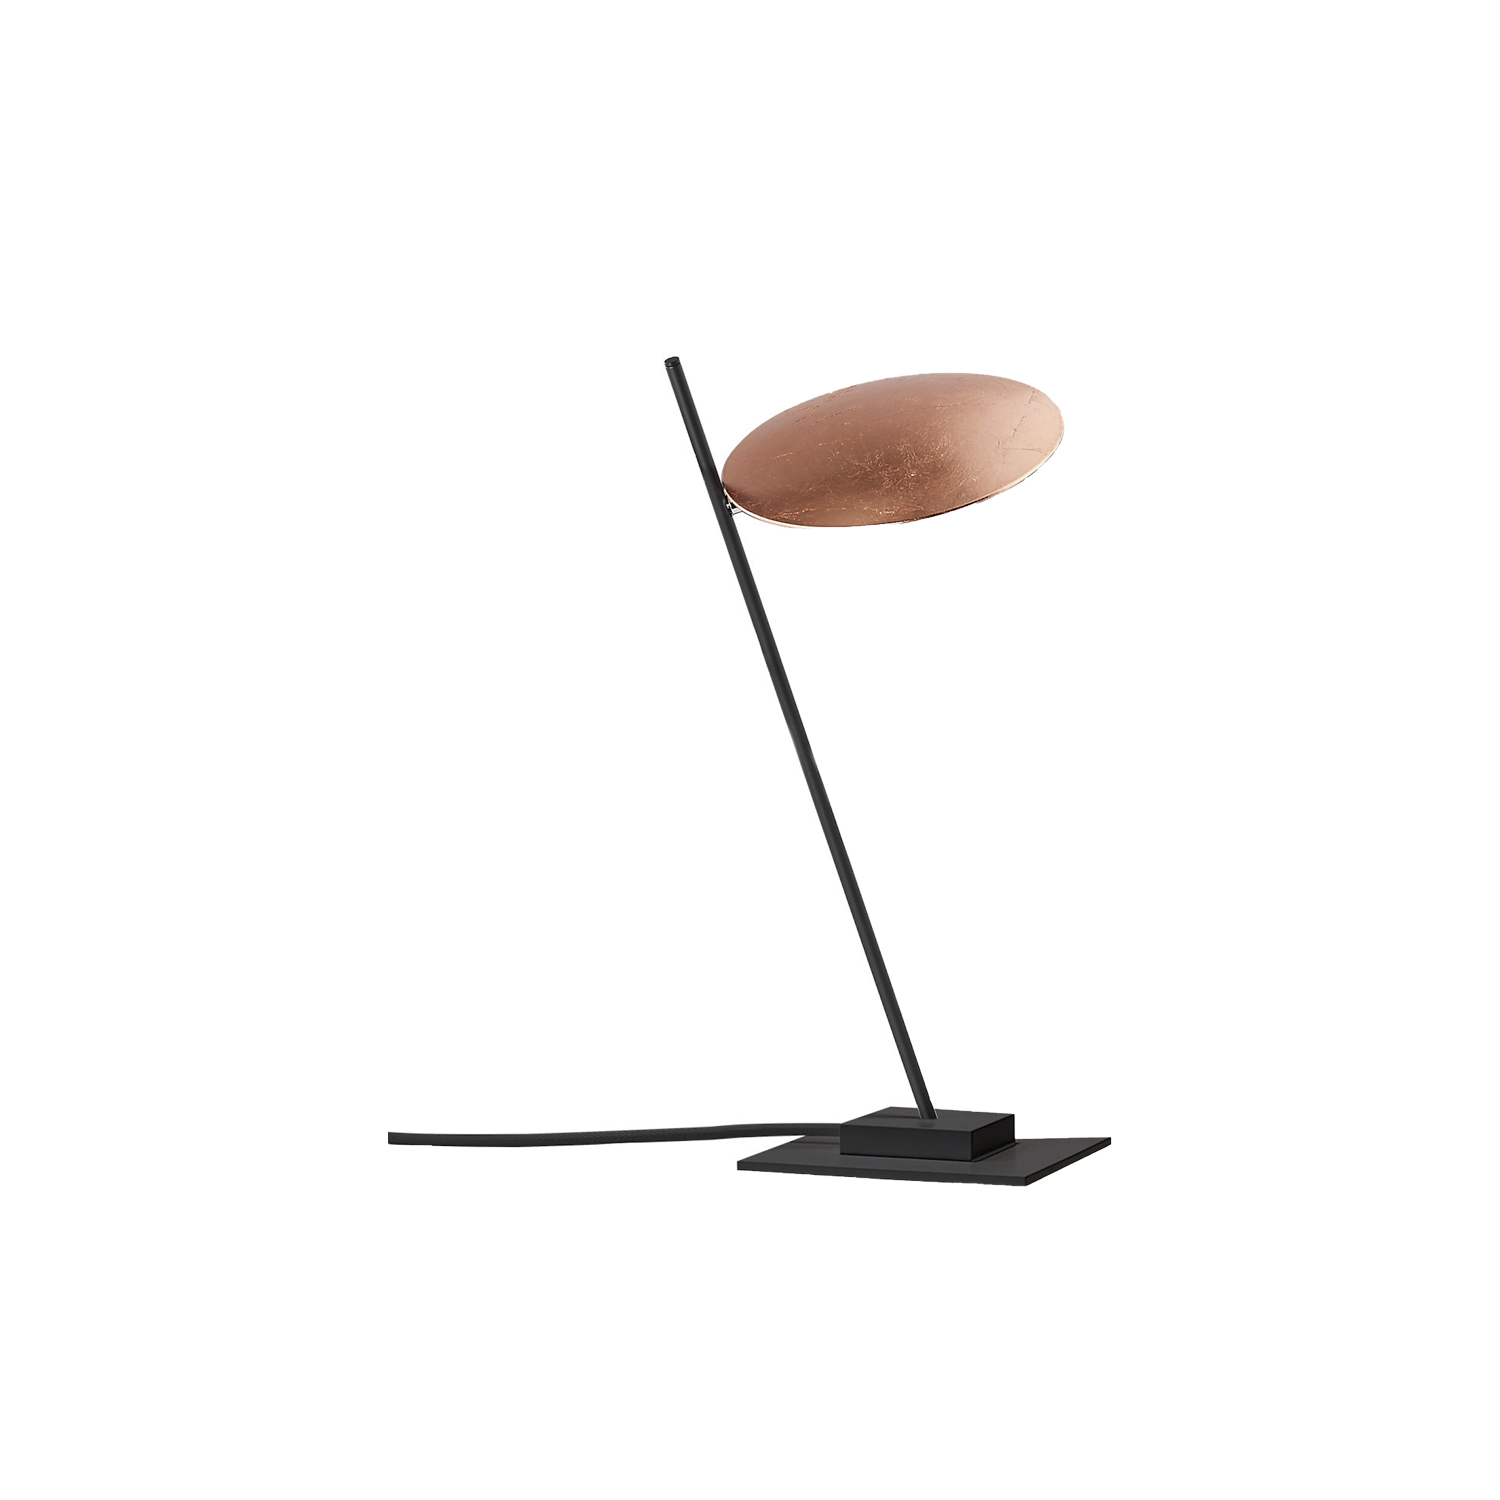 Lederam T1 Table Lamp - Lederam embodies the accuracy of the motion required to draw a line. The warm, softly coloured disks surround a LED module with an ultra-flat shape, which creates thin lamps and suspended forms with curved, sinuous lines. | Matter of Stuff